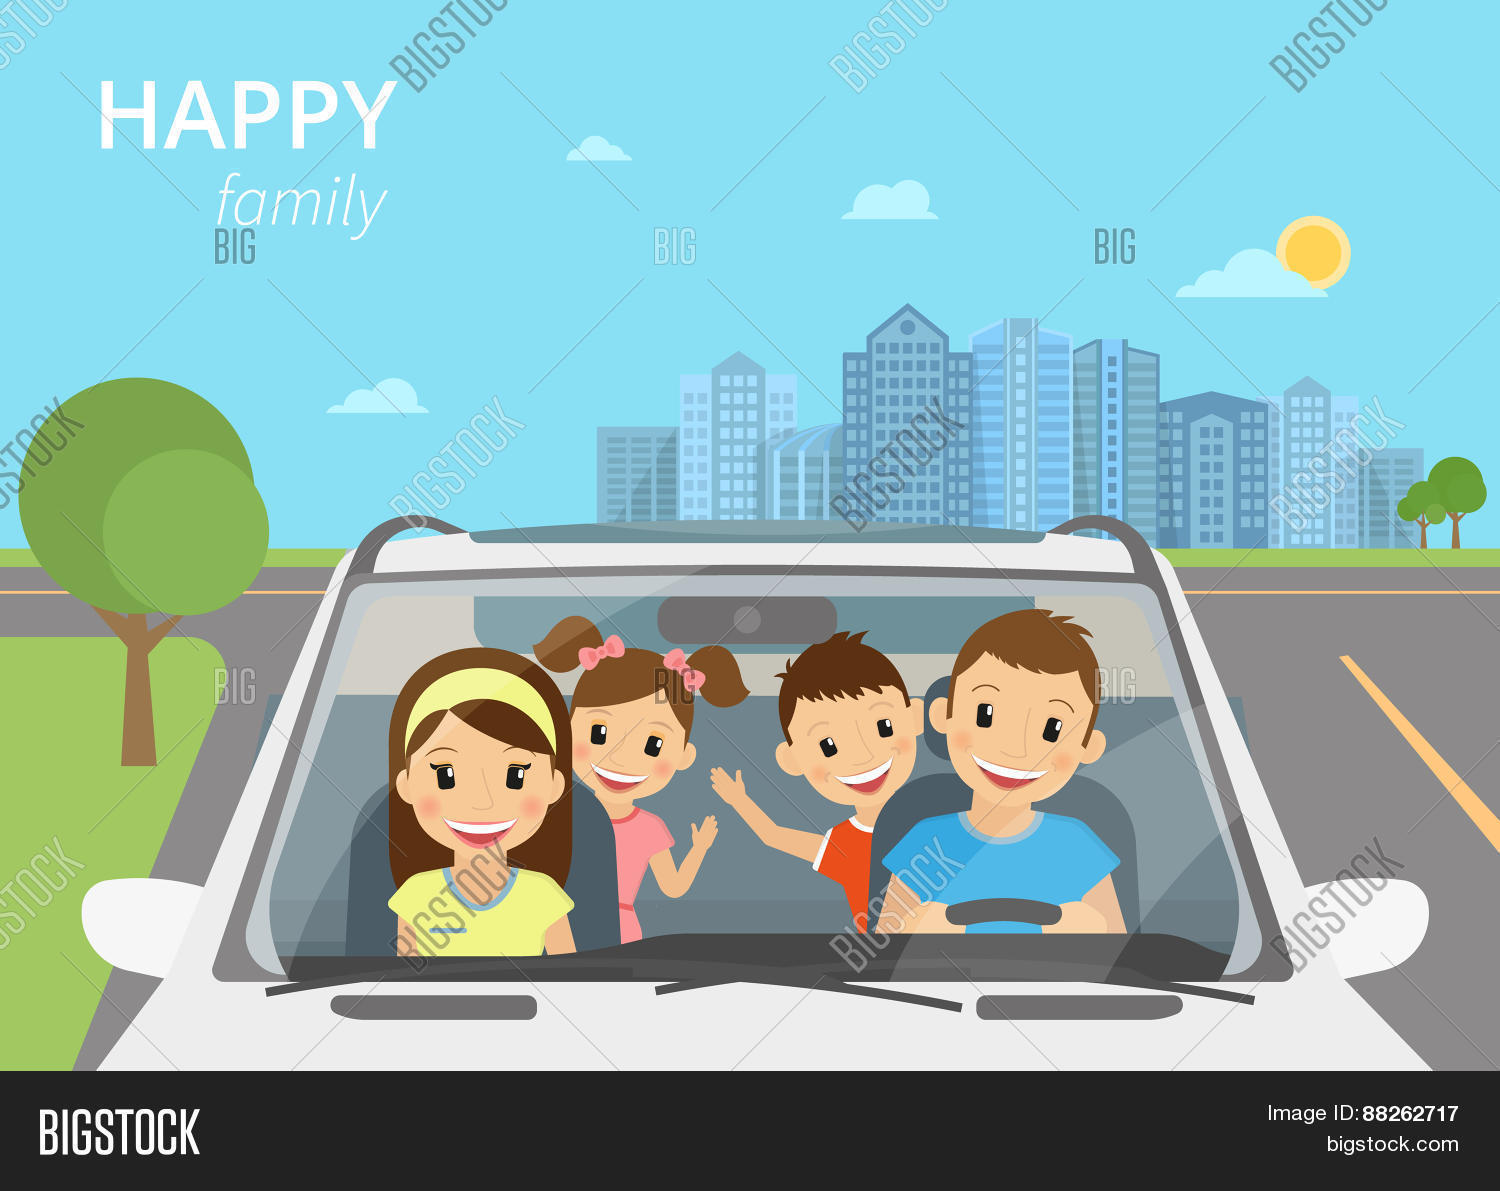 adult,automobile,boy,brother,car,cartoon,character,child,childhood,dad,daughter,family,family car,family in car,family travel,father,female,four,girl,group,happy,husband,illustration,journey,kid,kinship,little,love,male,mom,mother,move,outdoor,parent,parenting,people,relationship,relatives,retro,road,sister,smile,son,summer,sweet,together,togetherness,tour,travel,trip,vector,wife,woman